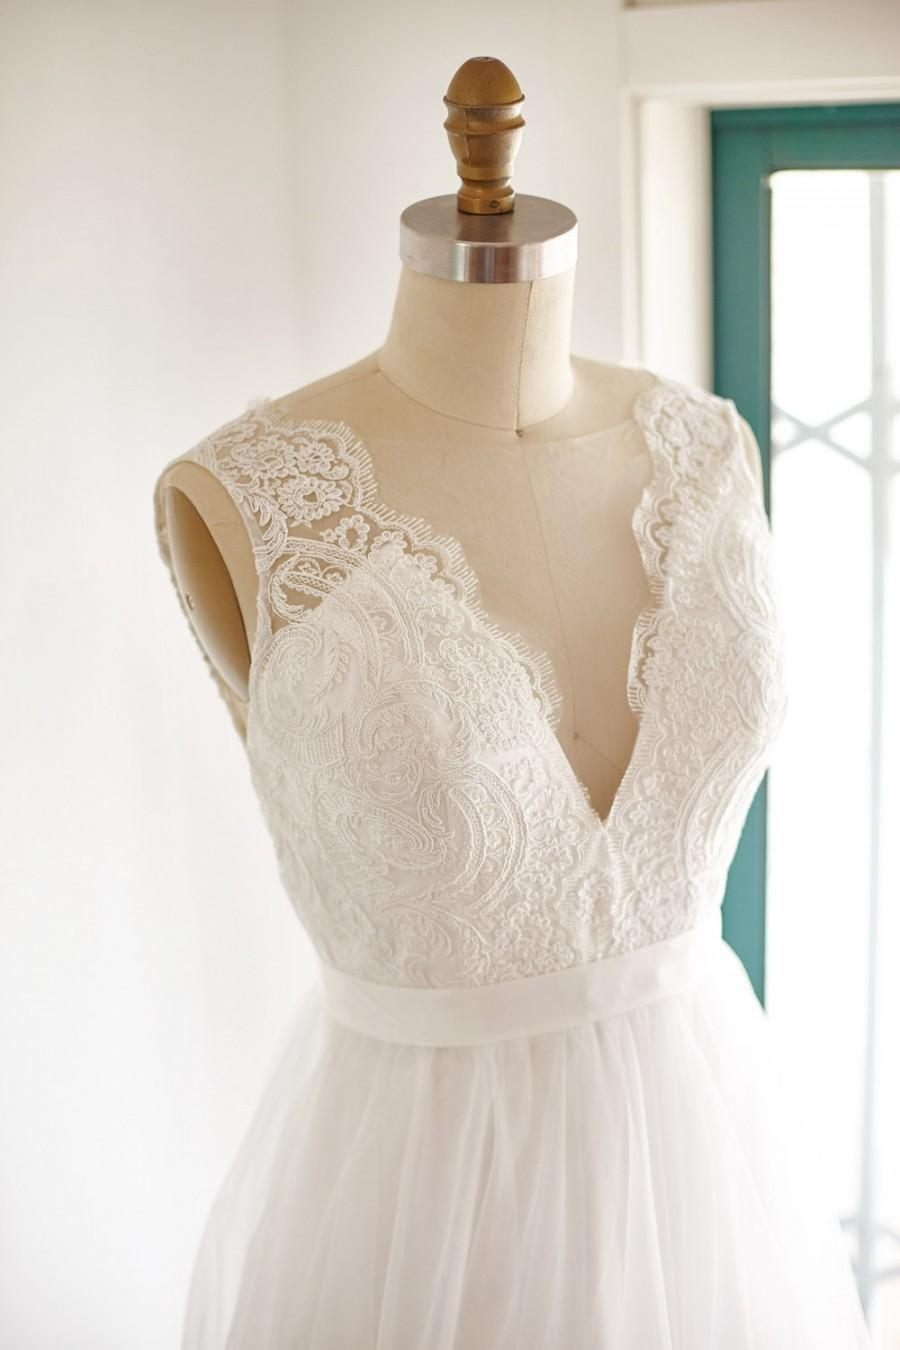 Mariage - Sheer Illusion Lace Tulle Beach Boho Wedding Dress Bridal Gown